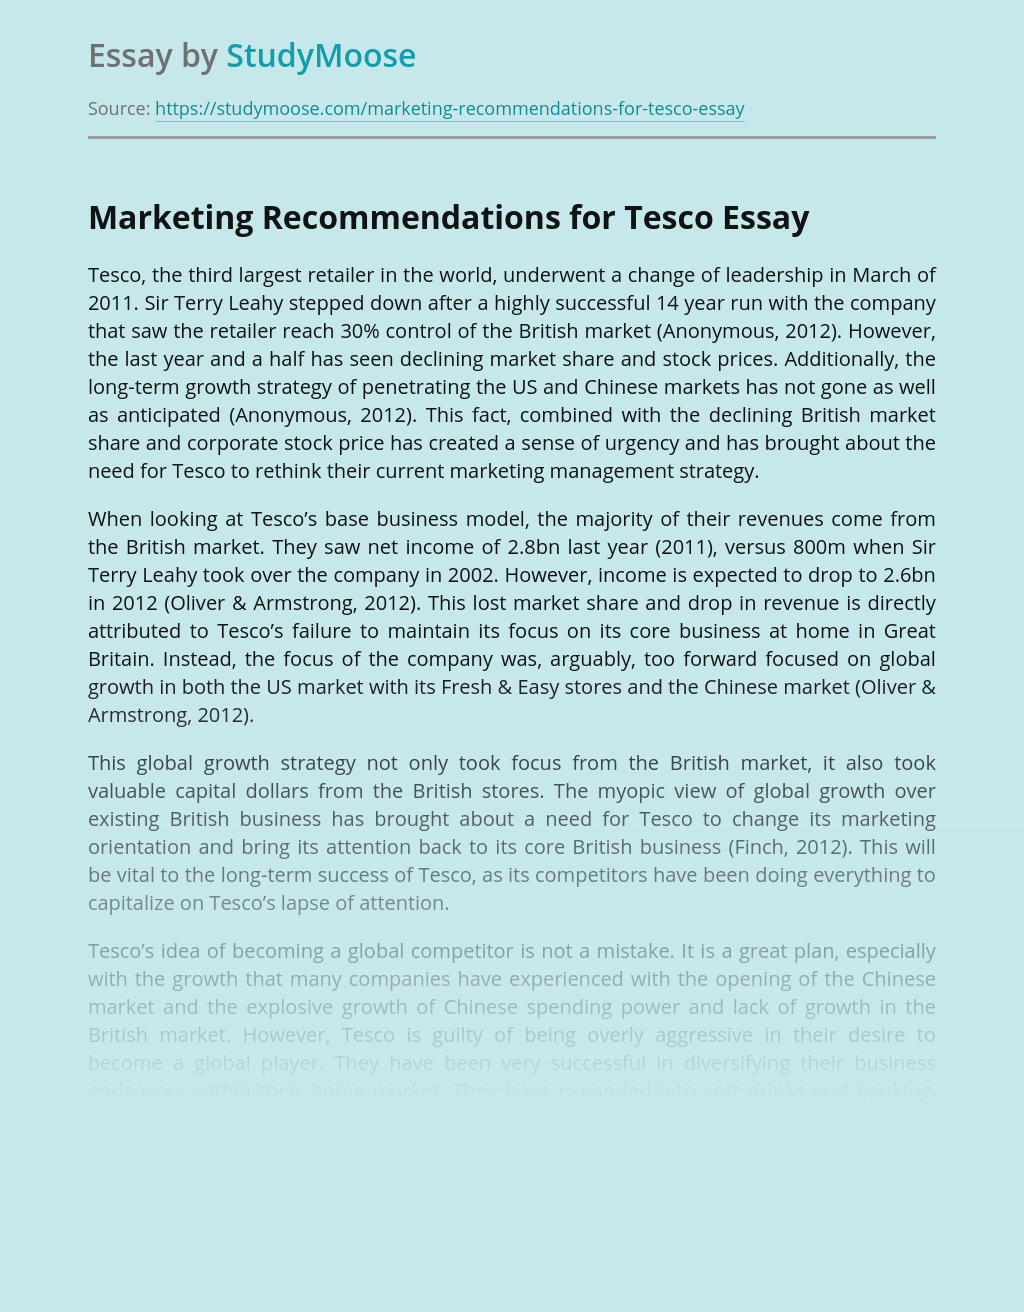 Marketing Recommendations for Tesco